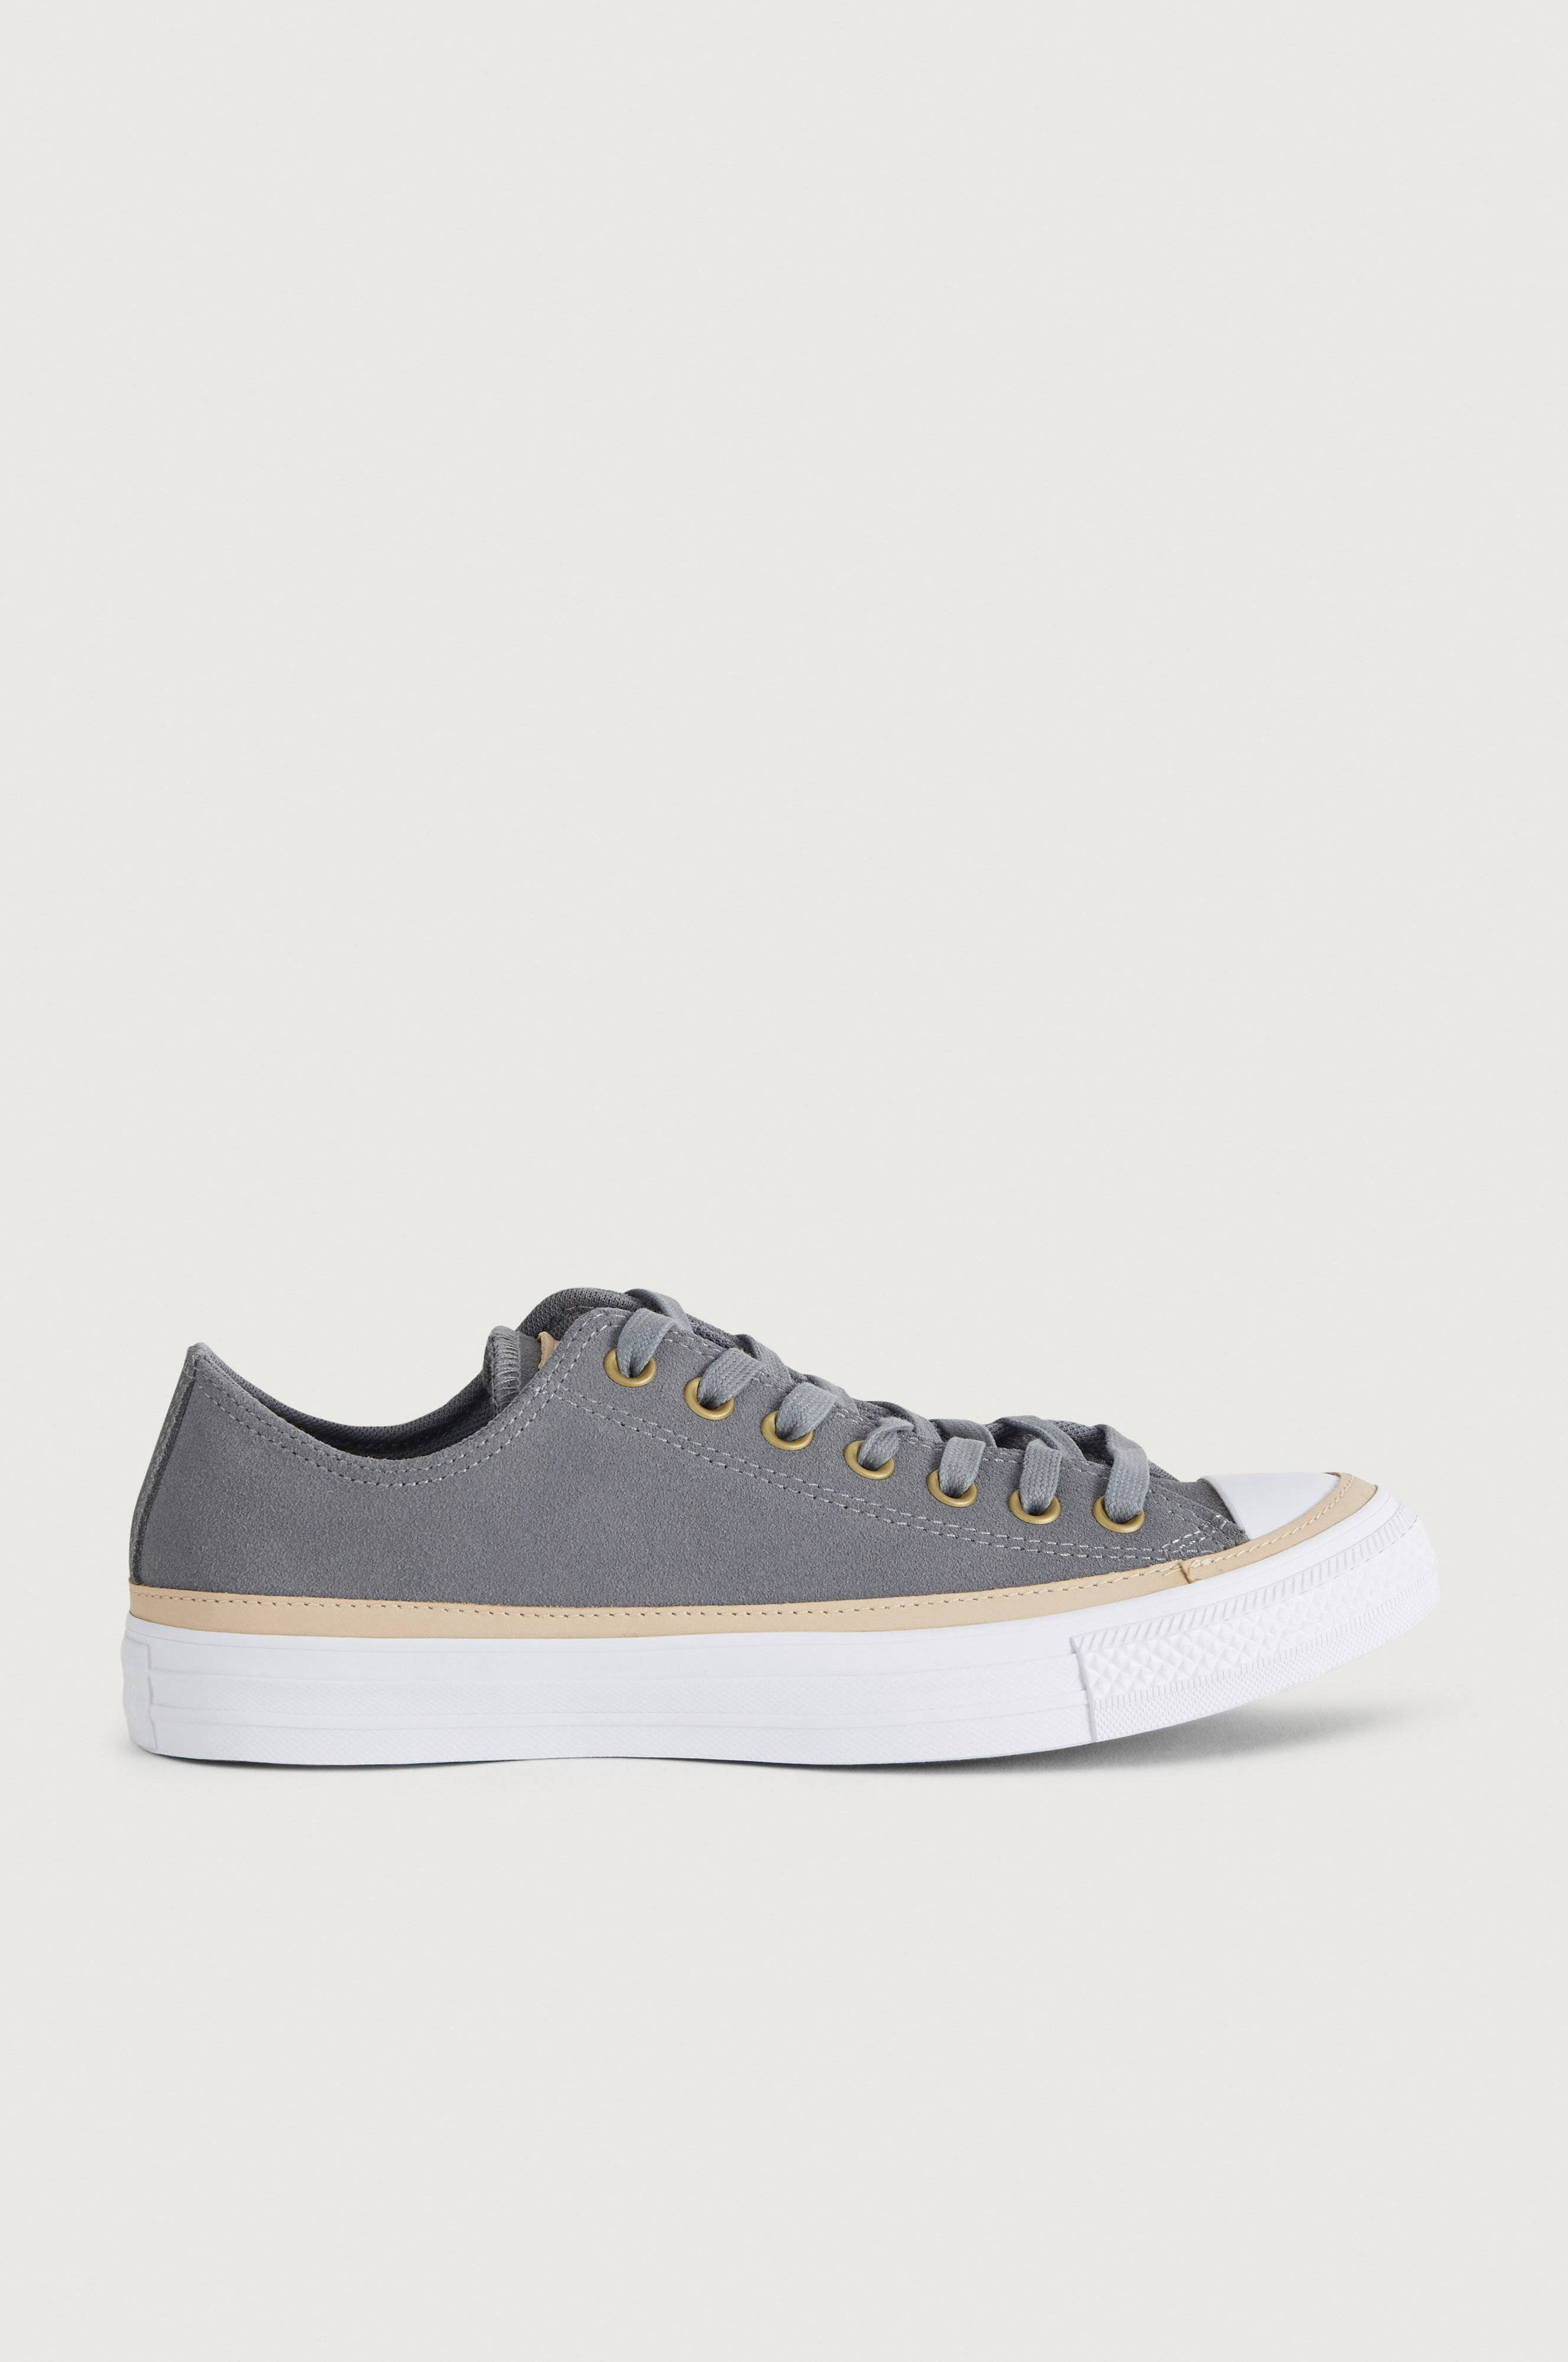 Converse Sneakers Chuck Taylor All Star Hi Vachetta Multi